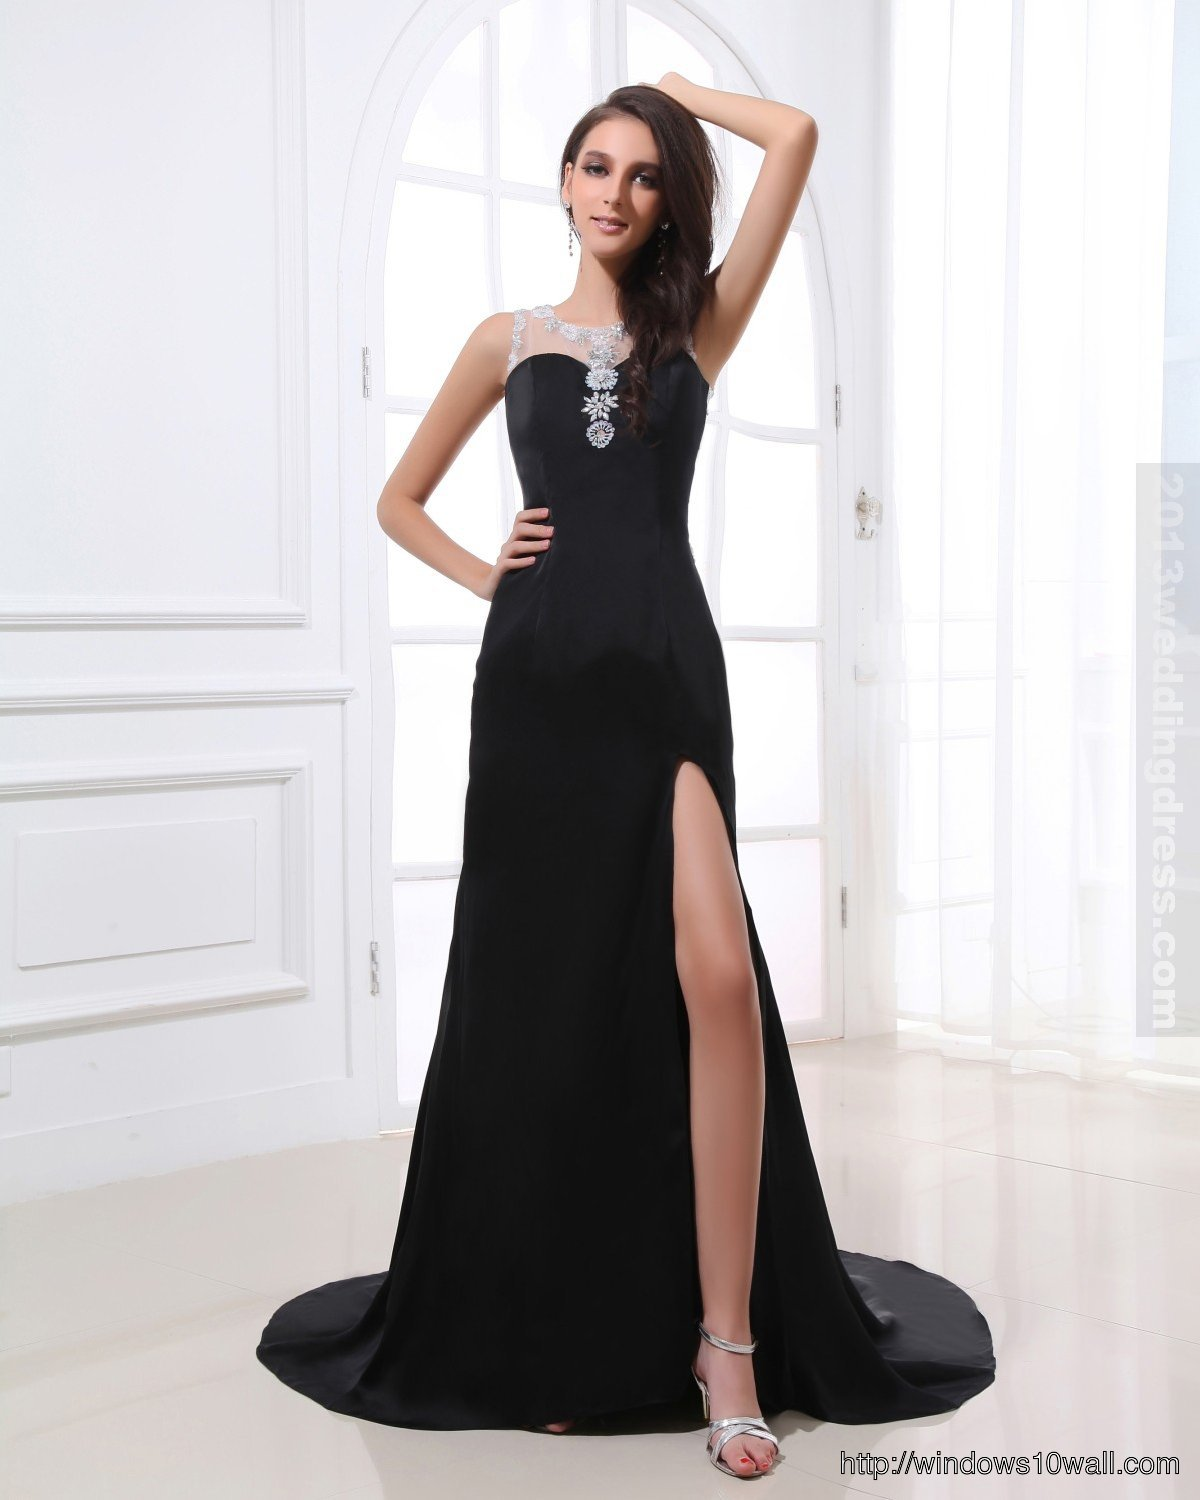 black-sleeveless-prom-dress-elegant-look-background-wallpaper